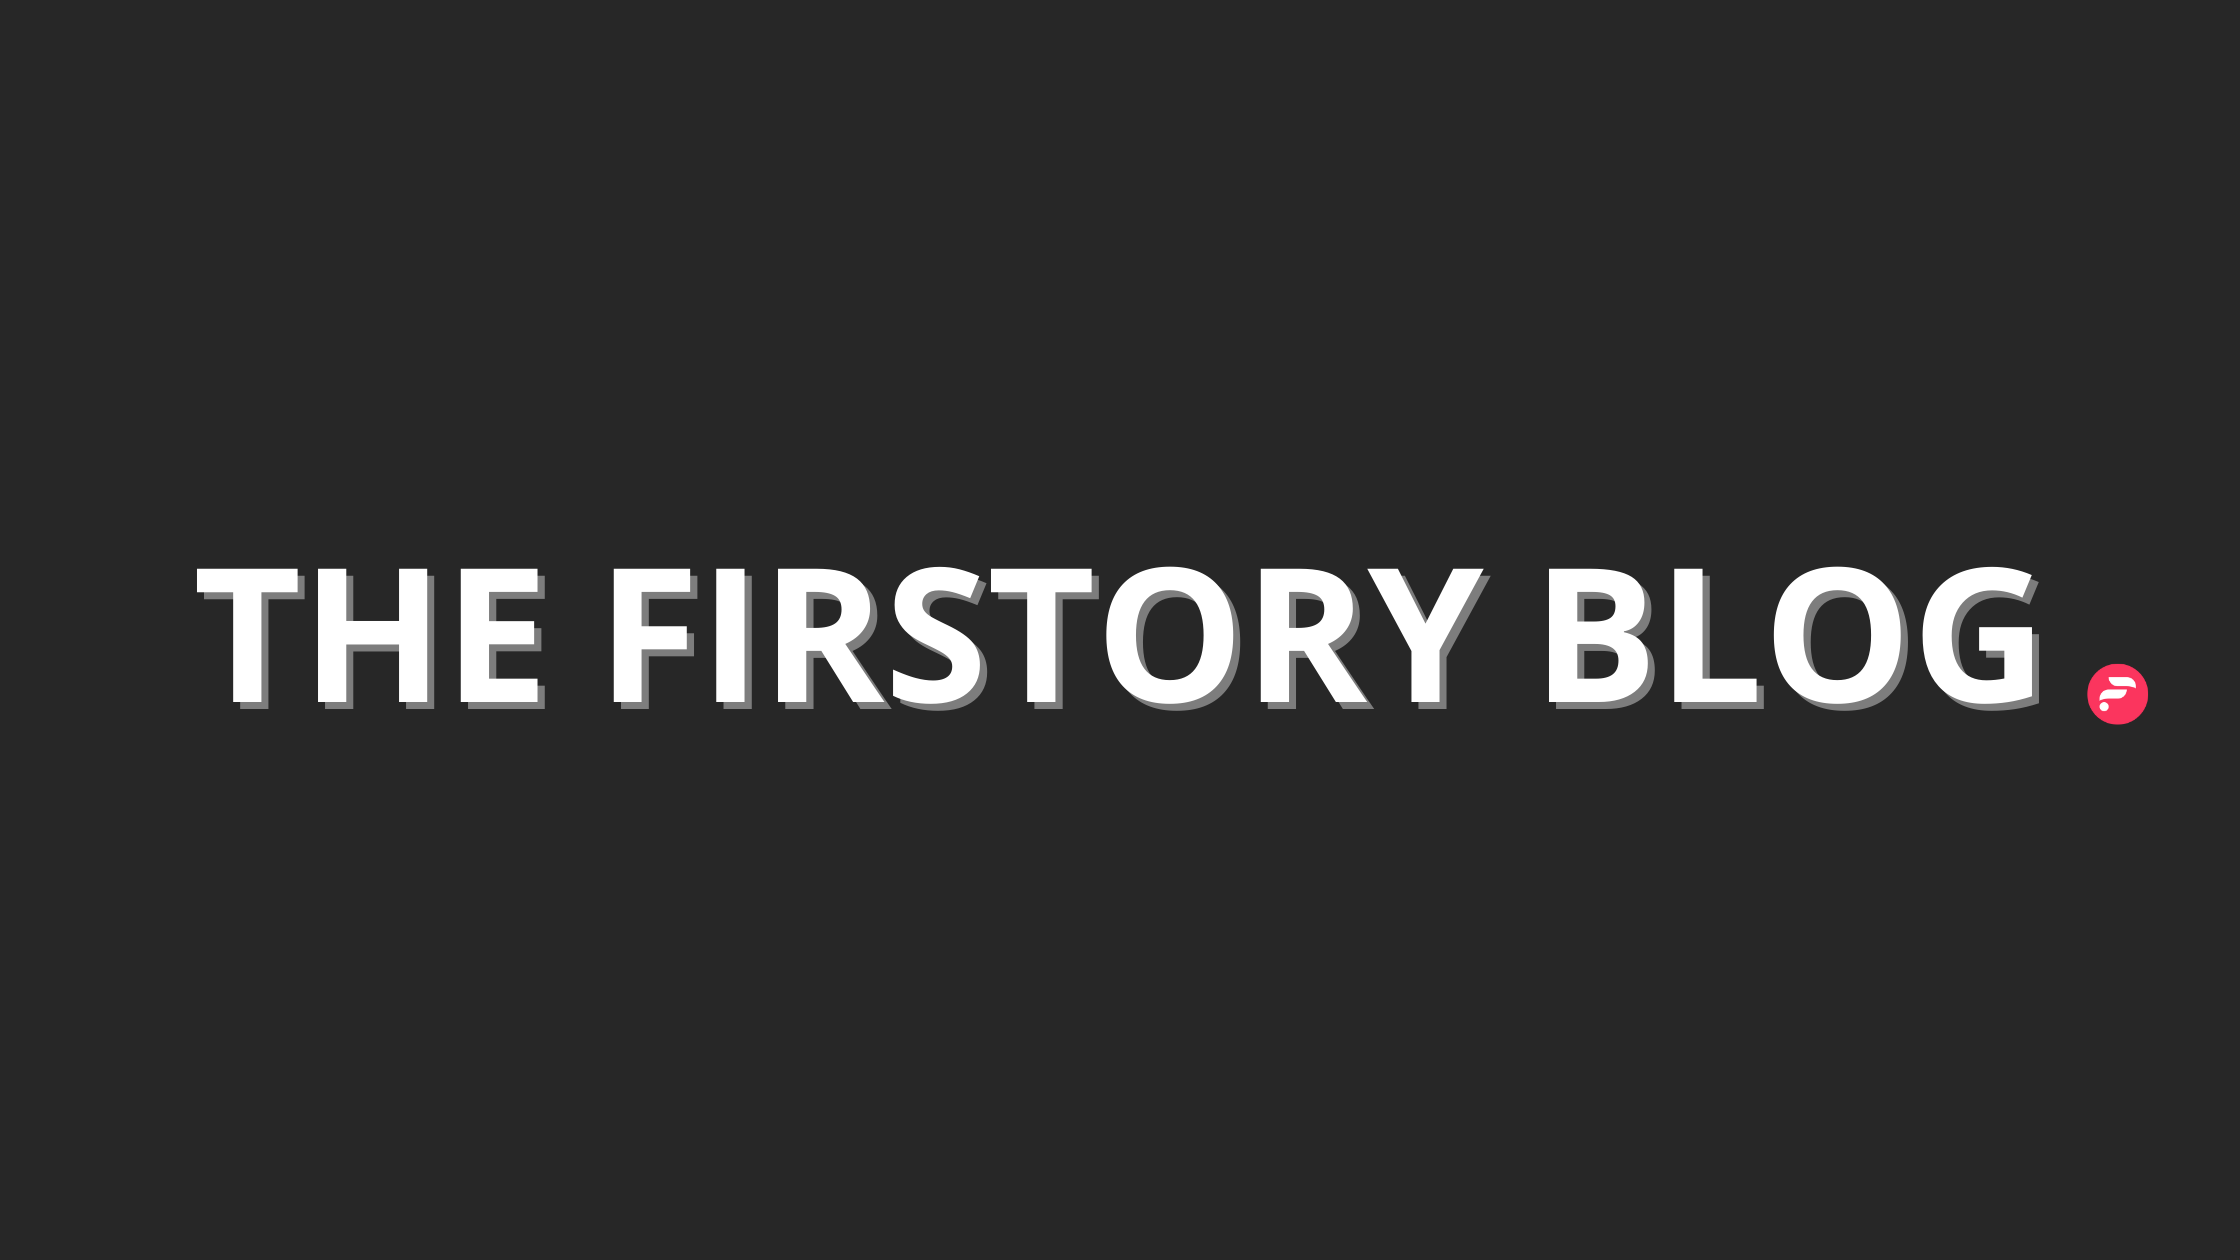 The Firstory Blog